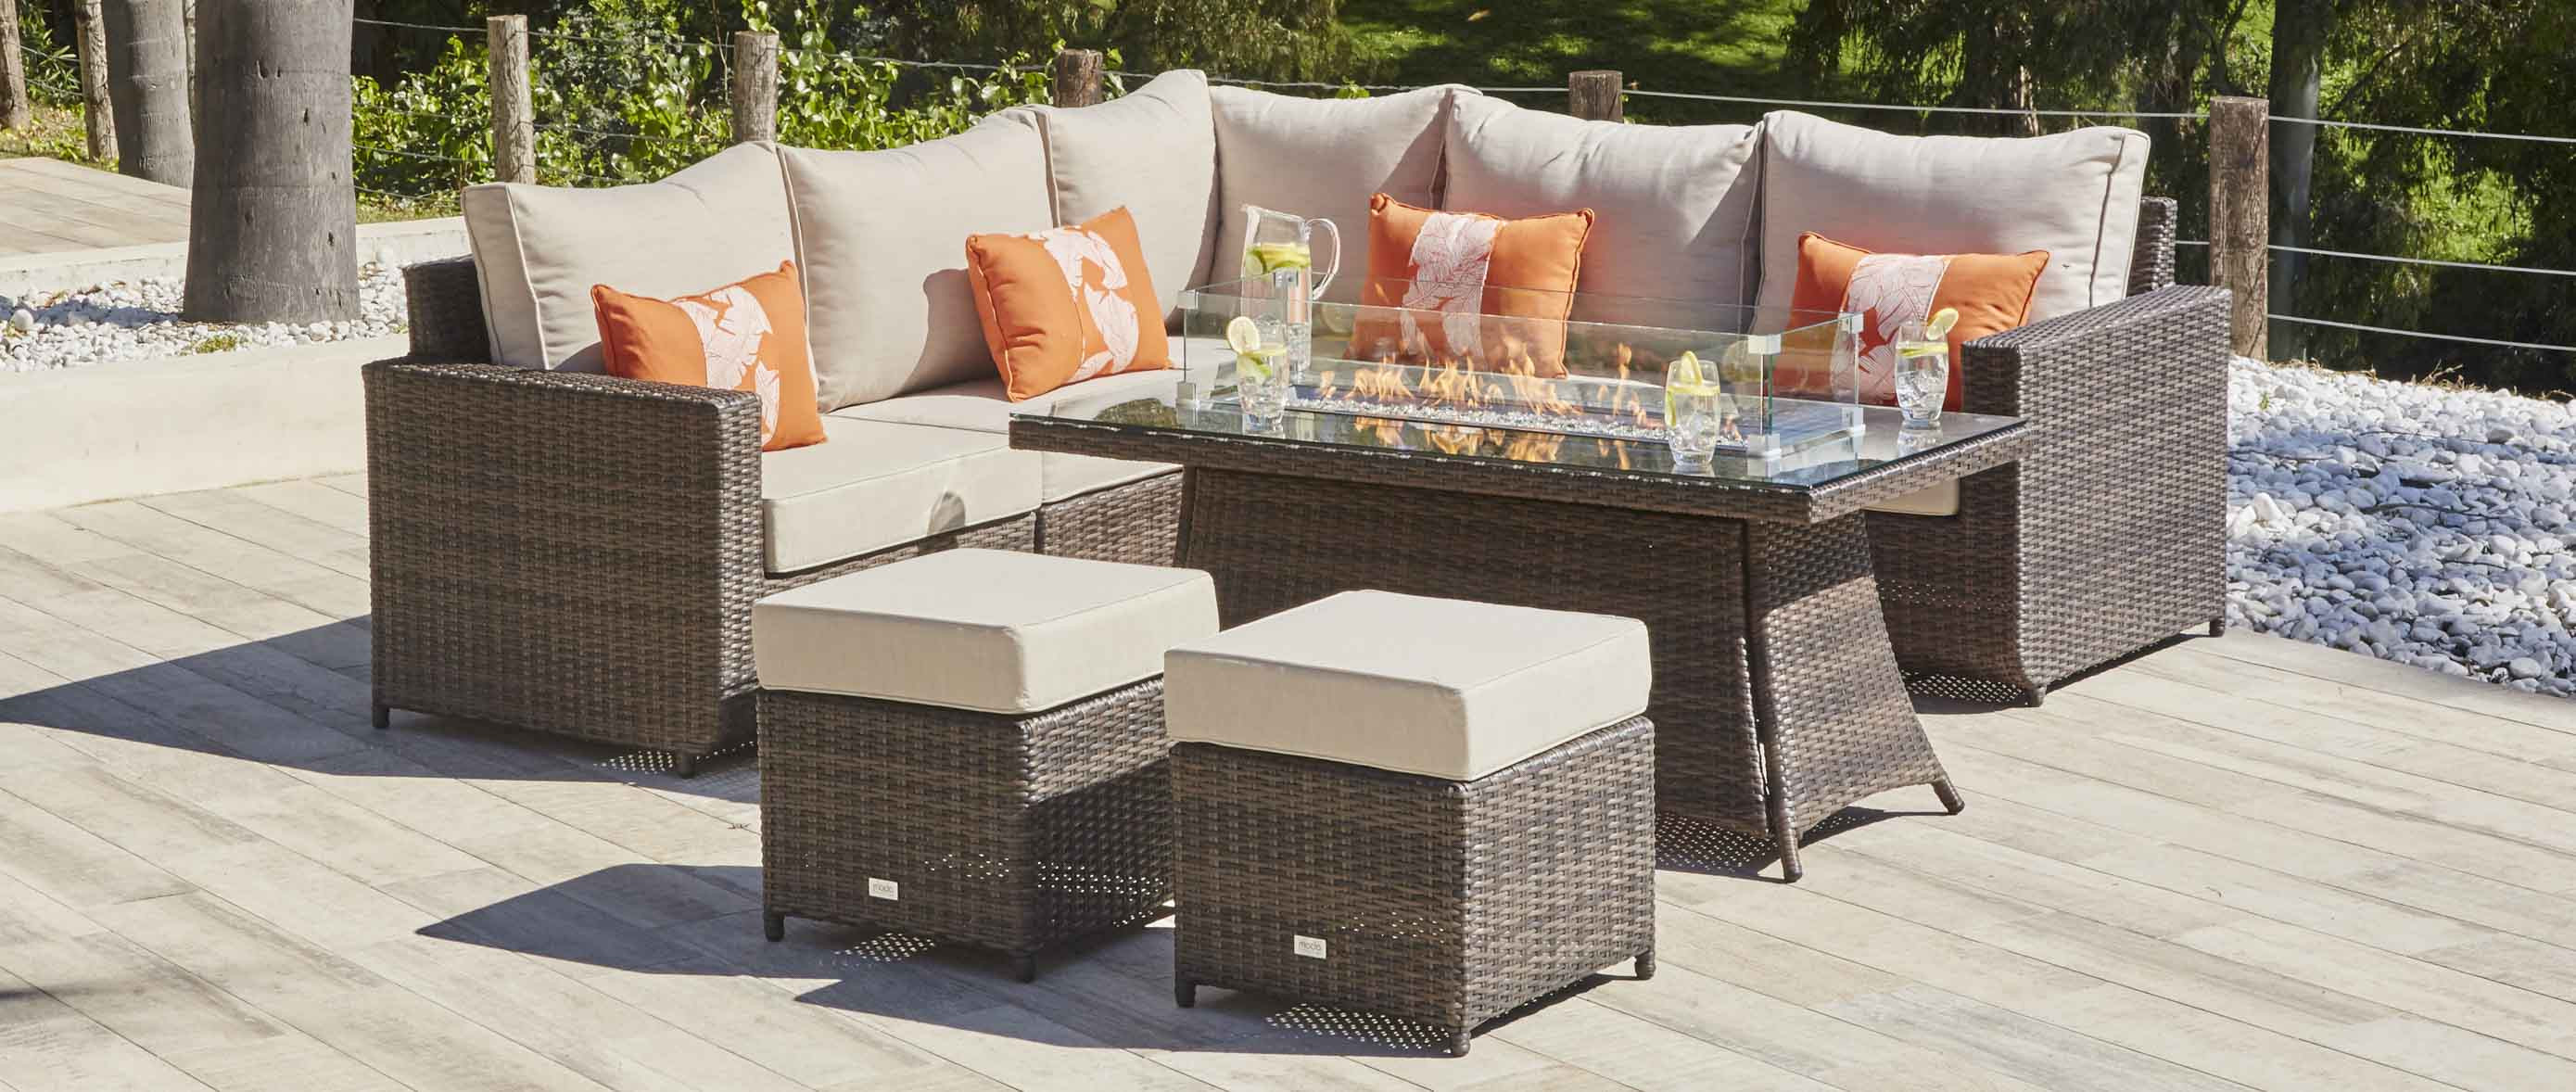 table large square coffee white plastic outdoor side tables iron patio and wrought tall full size wine holder wood ikea lack pin legs small accent black nesting tro furniture half